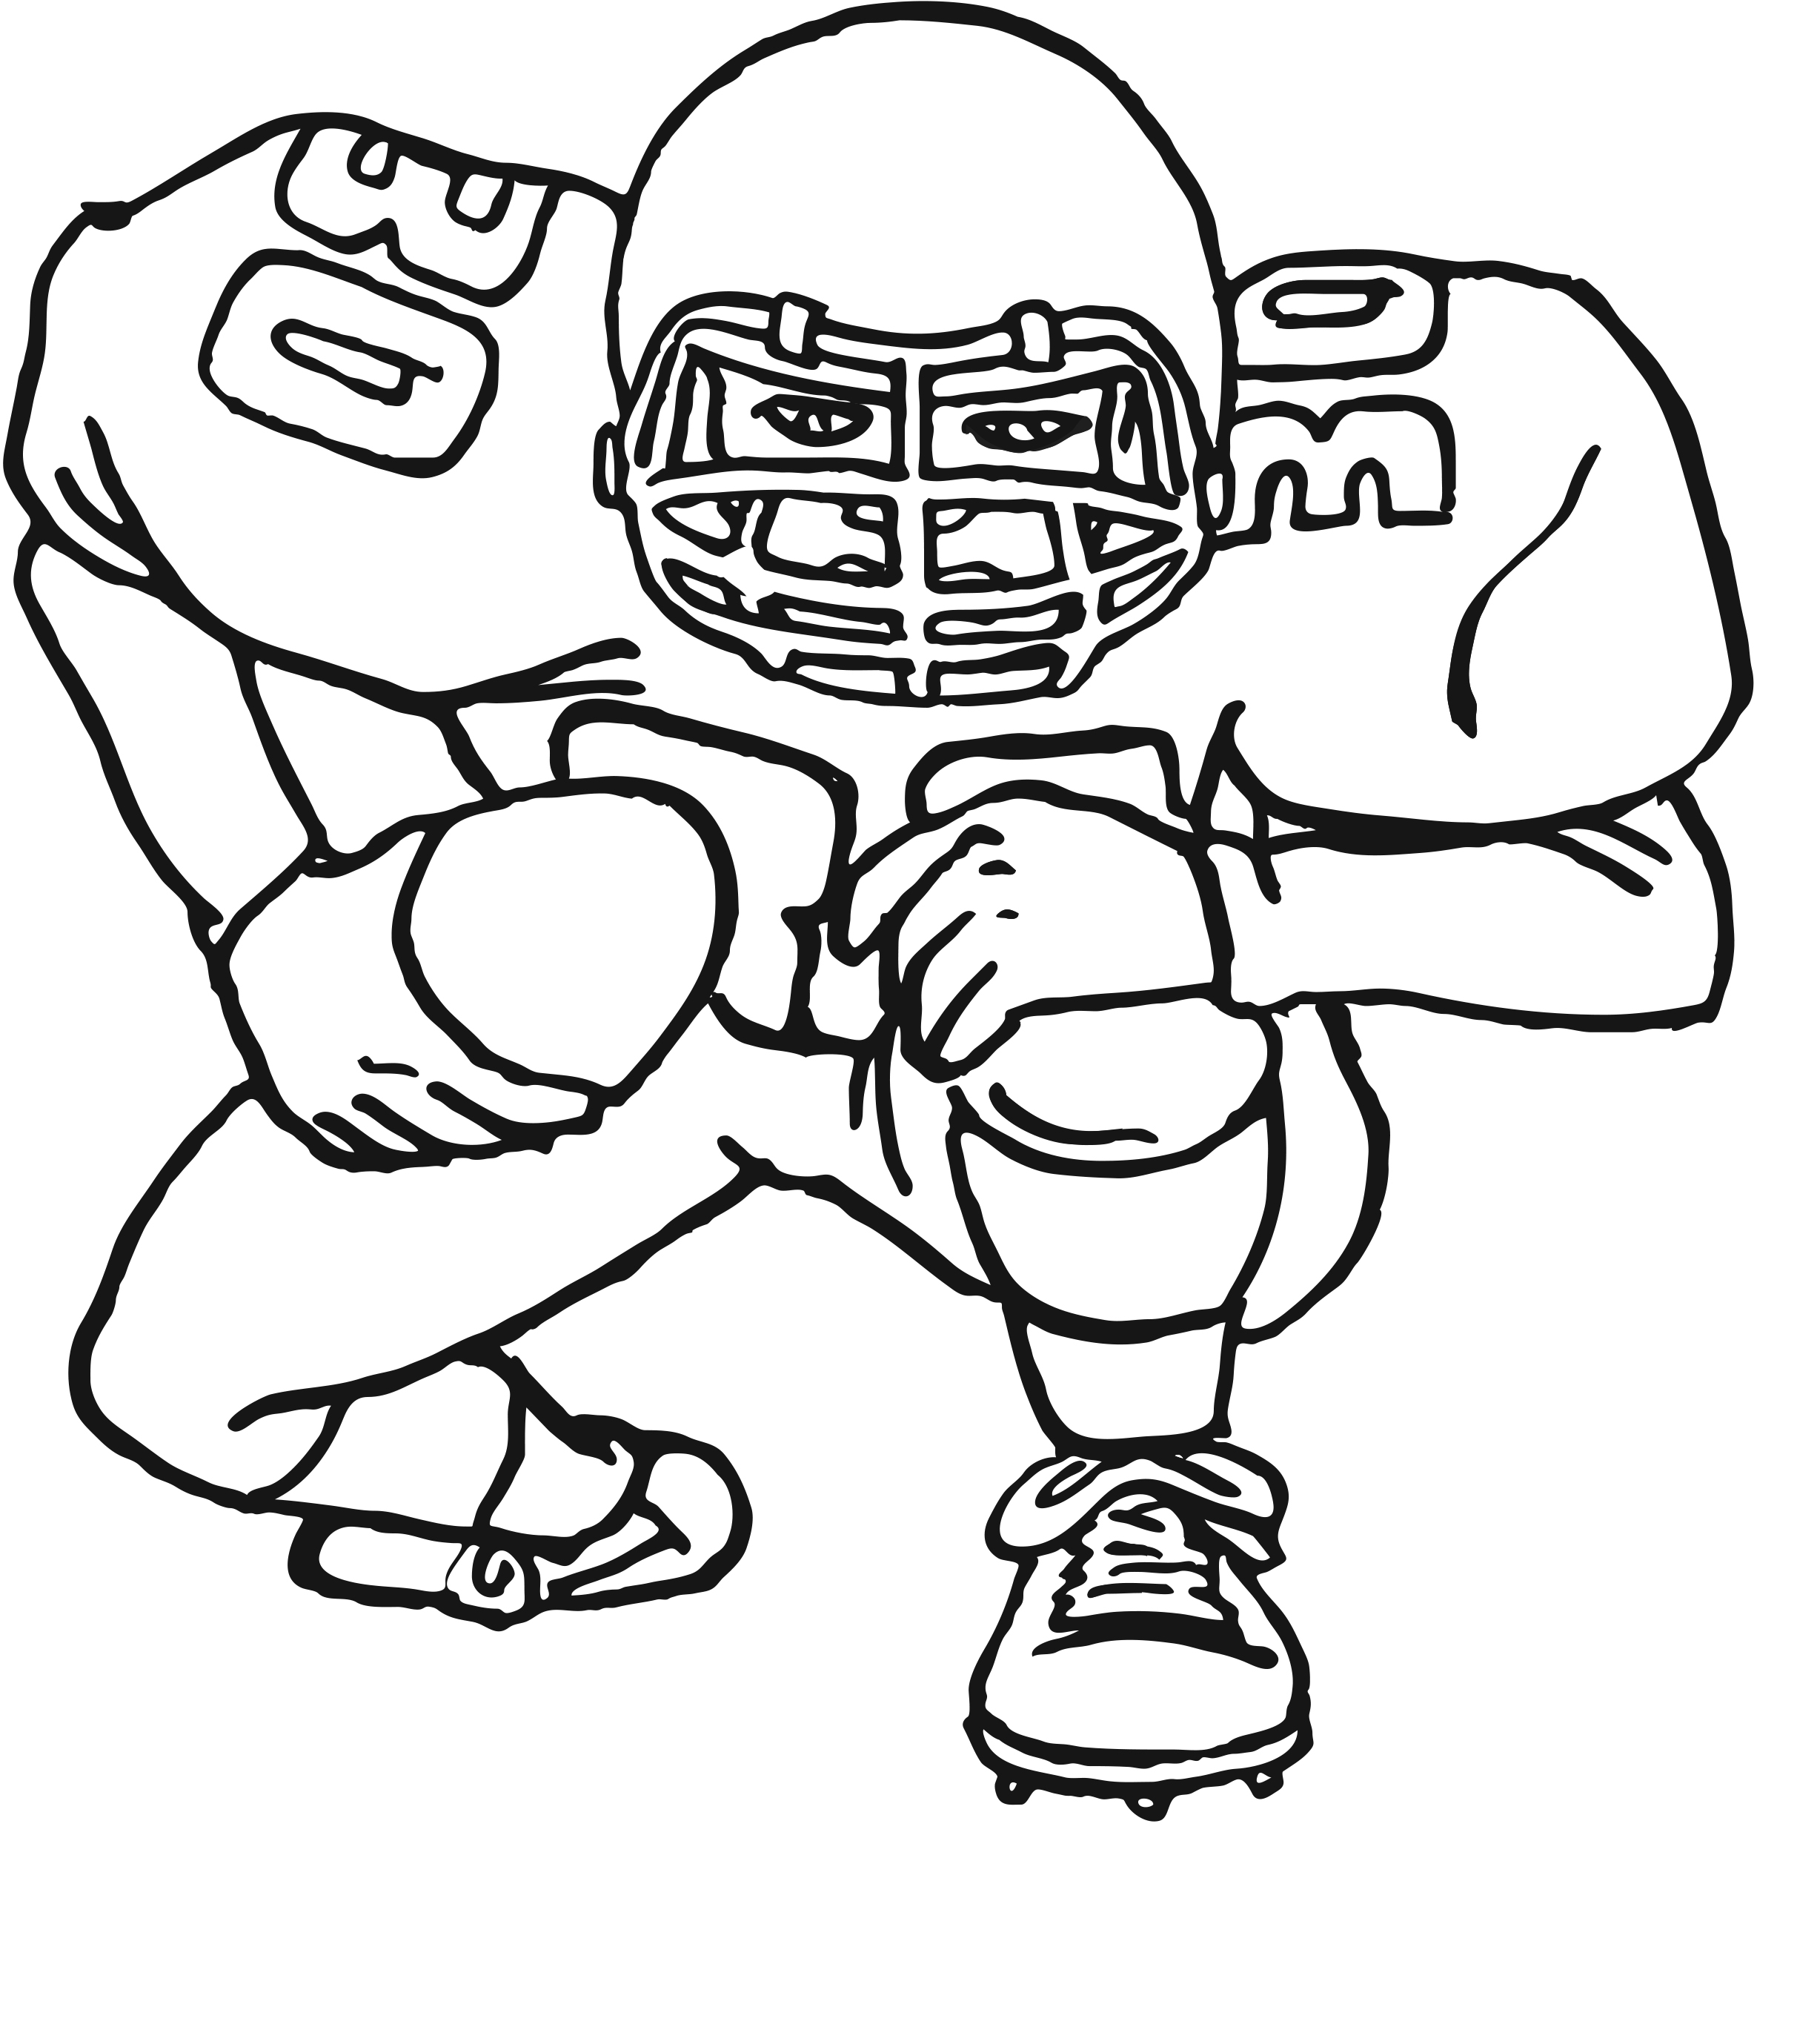 coloring football free printable football coloring pages for kids best coloring football